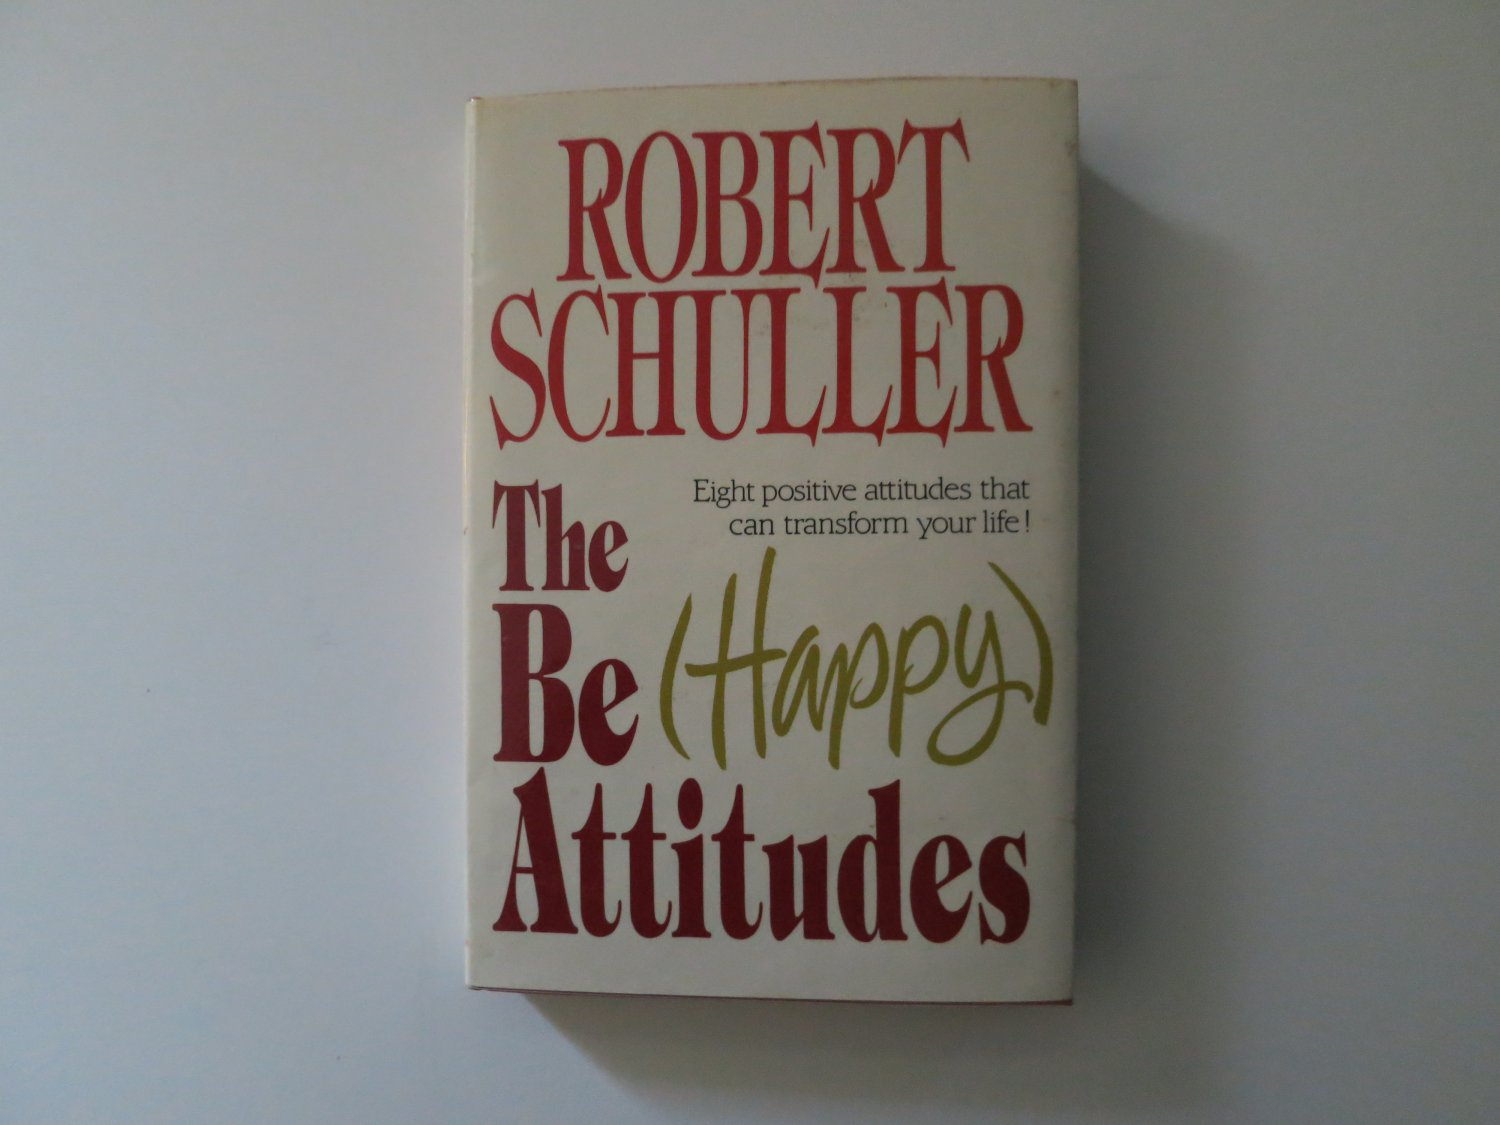 The Be (Happy) Attitudes by Robert Schuller (Hardcover) 1985